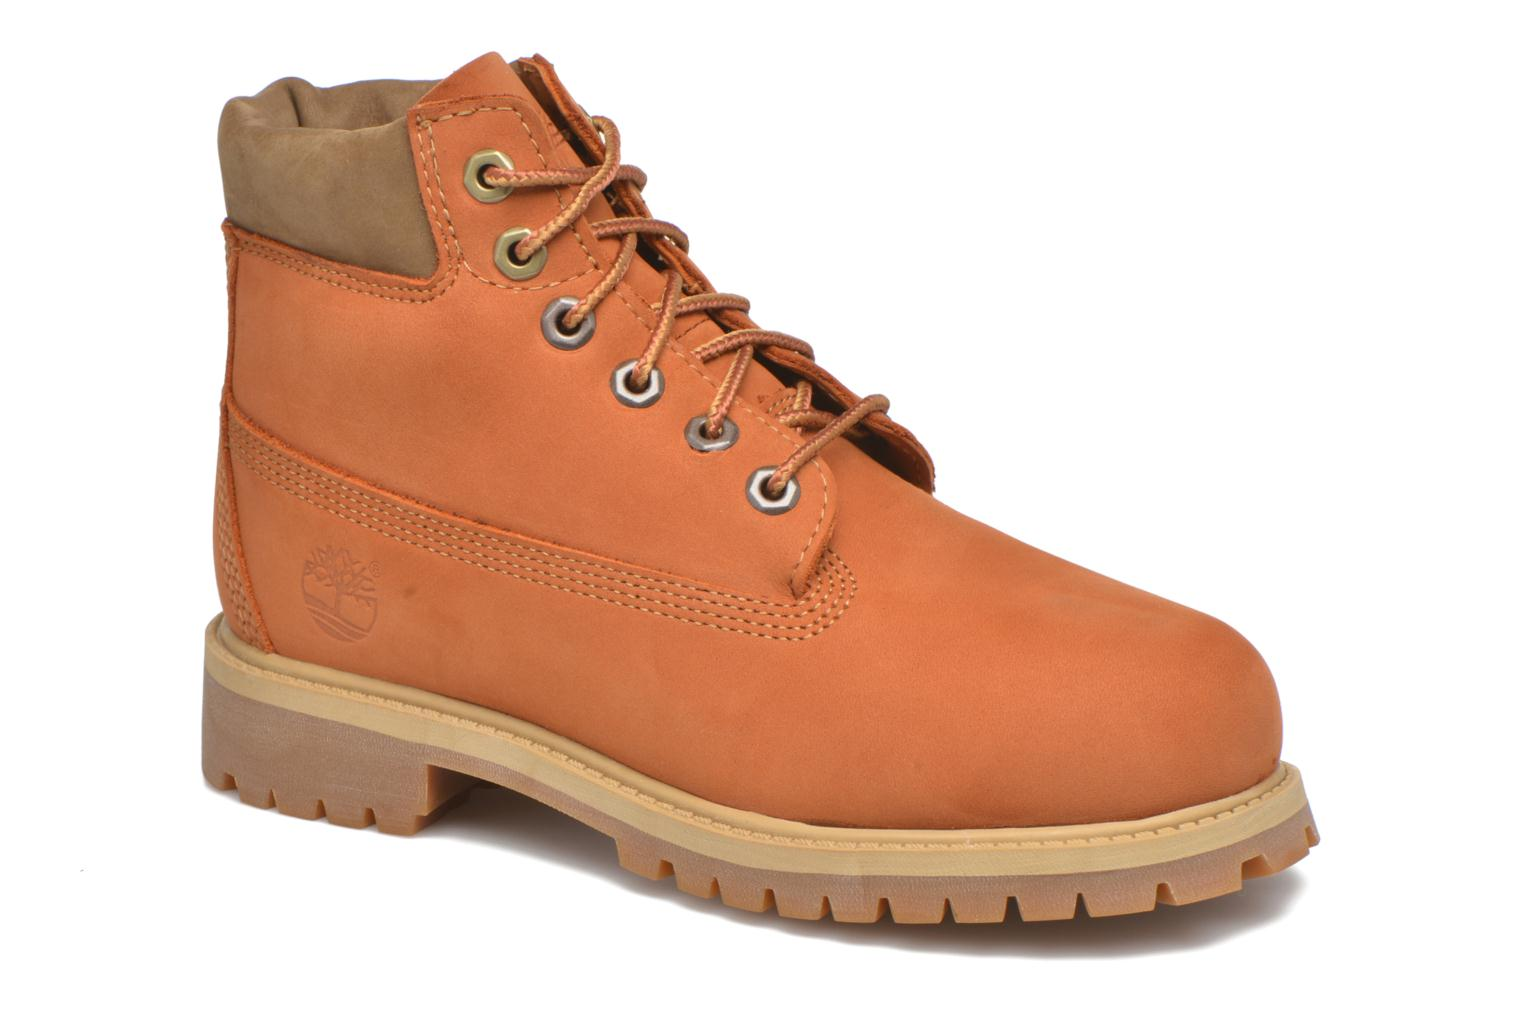 6 In Premium WP Boot New Gourd